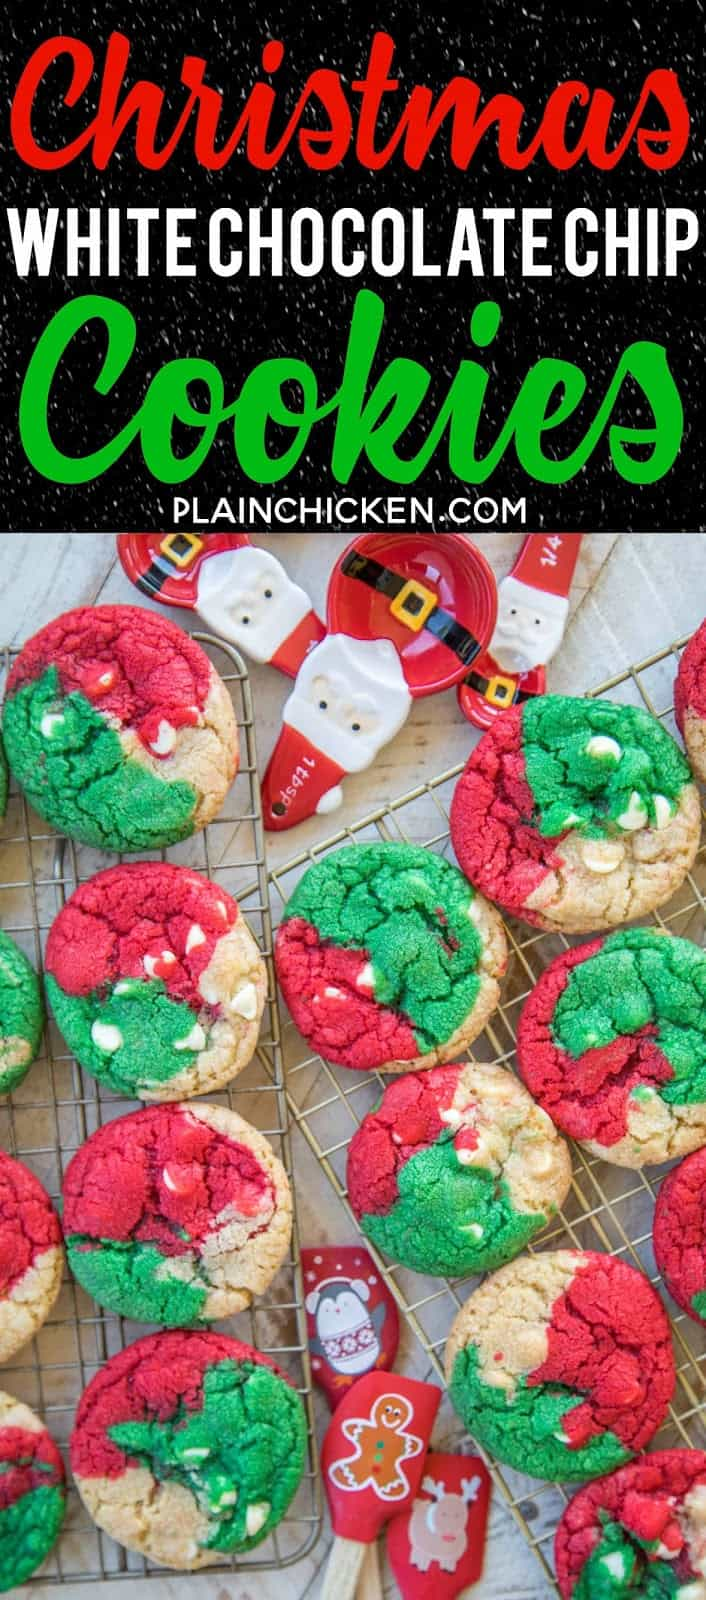 Christmas White Chocolate Chip Cookies - fun, festive Christmas themed cookies. THE BEST chocolate chip cookie EVER! I ate WAY too many of these!! Shortening,  flour, salt, sugar, brown sugar, eggs, vanilla, white chocolate chips, gel food coloring. Can make cookies with regular chocolate chips. You can also skip the food coloring if you aren't making for #Christmas. Seriously THE BEST cookie recipe!!! #cookierecipe #christmascookie #christmascookierecipe #holidayrecipes